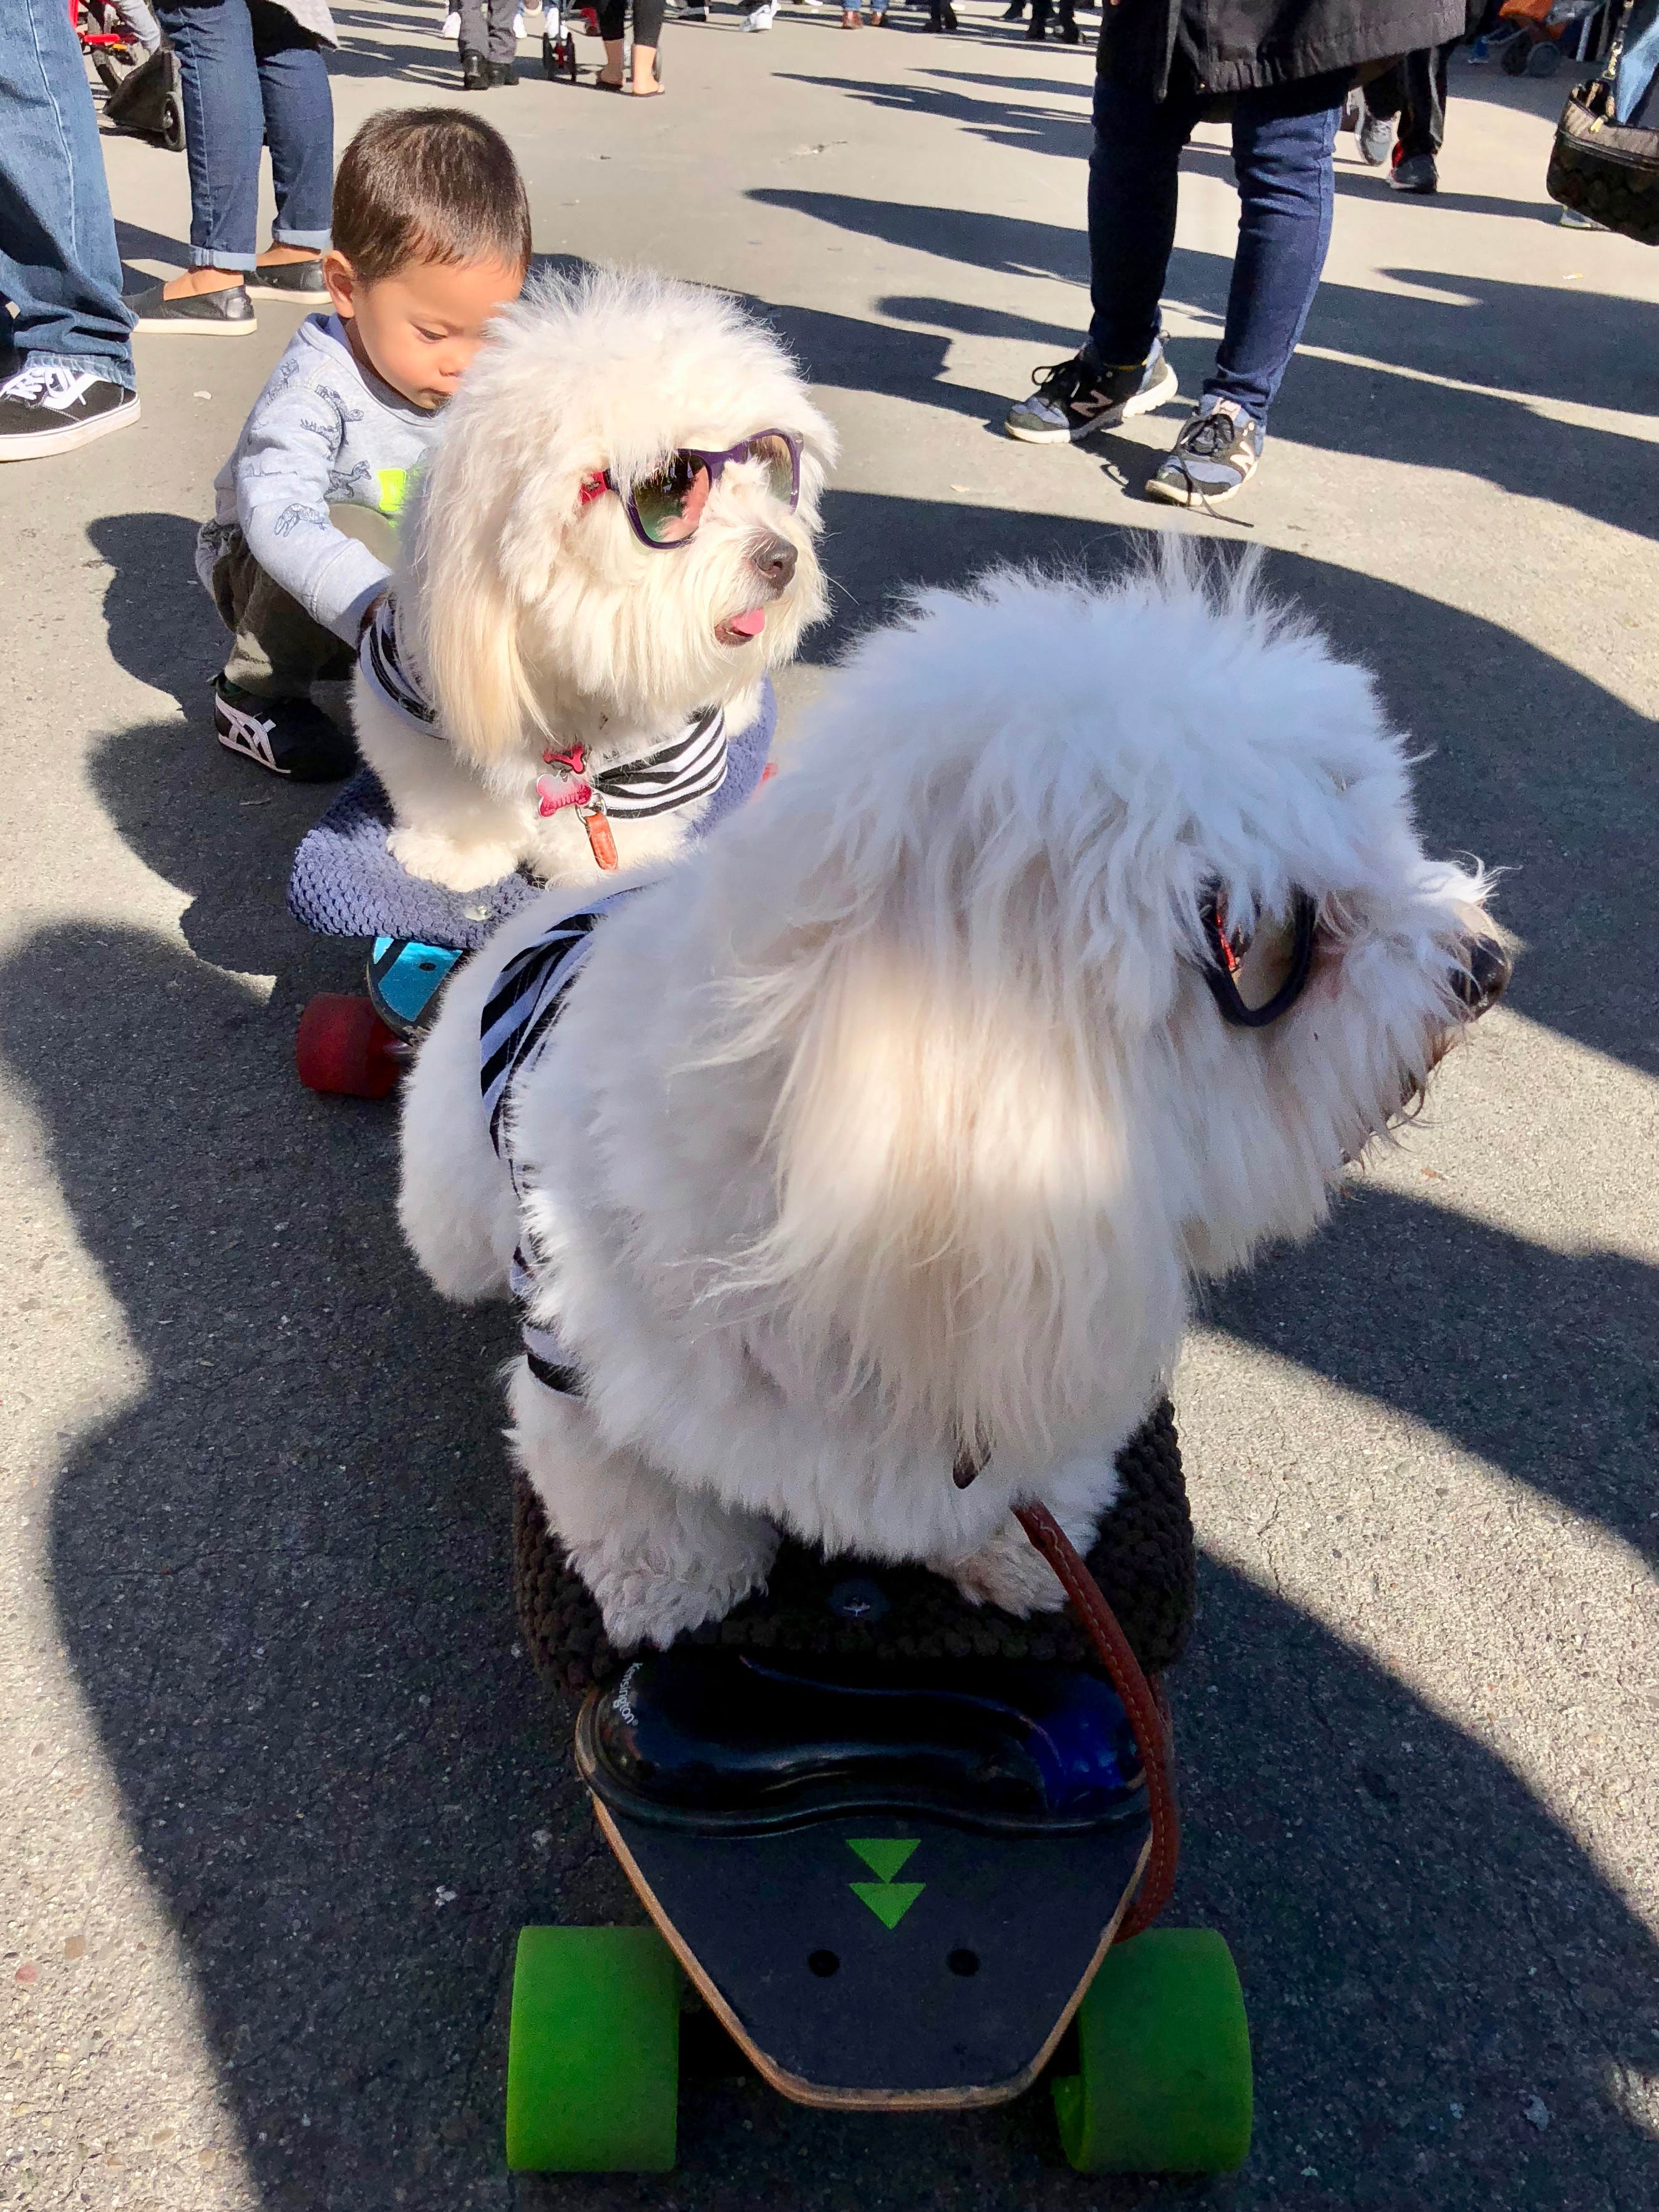 Two Coton De Tulear Dogs Sitting On SkateboardsTwo Coton De Tulear Dogs Sitting On Skateboards